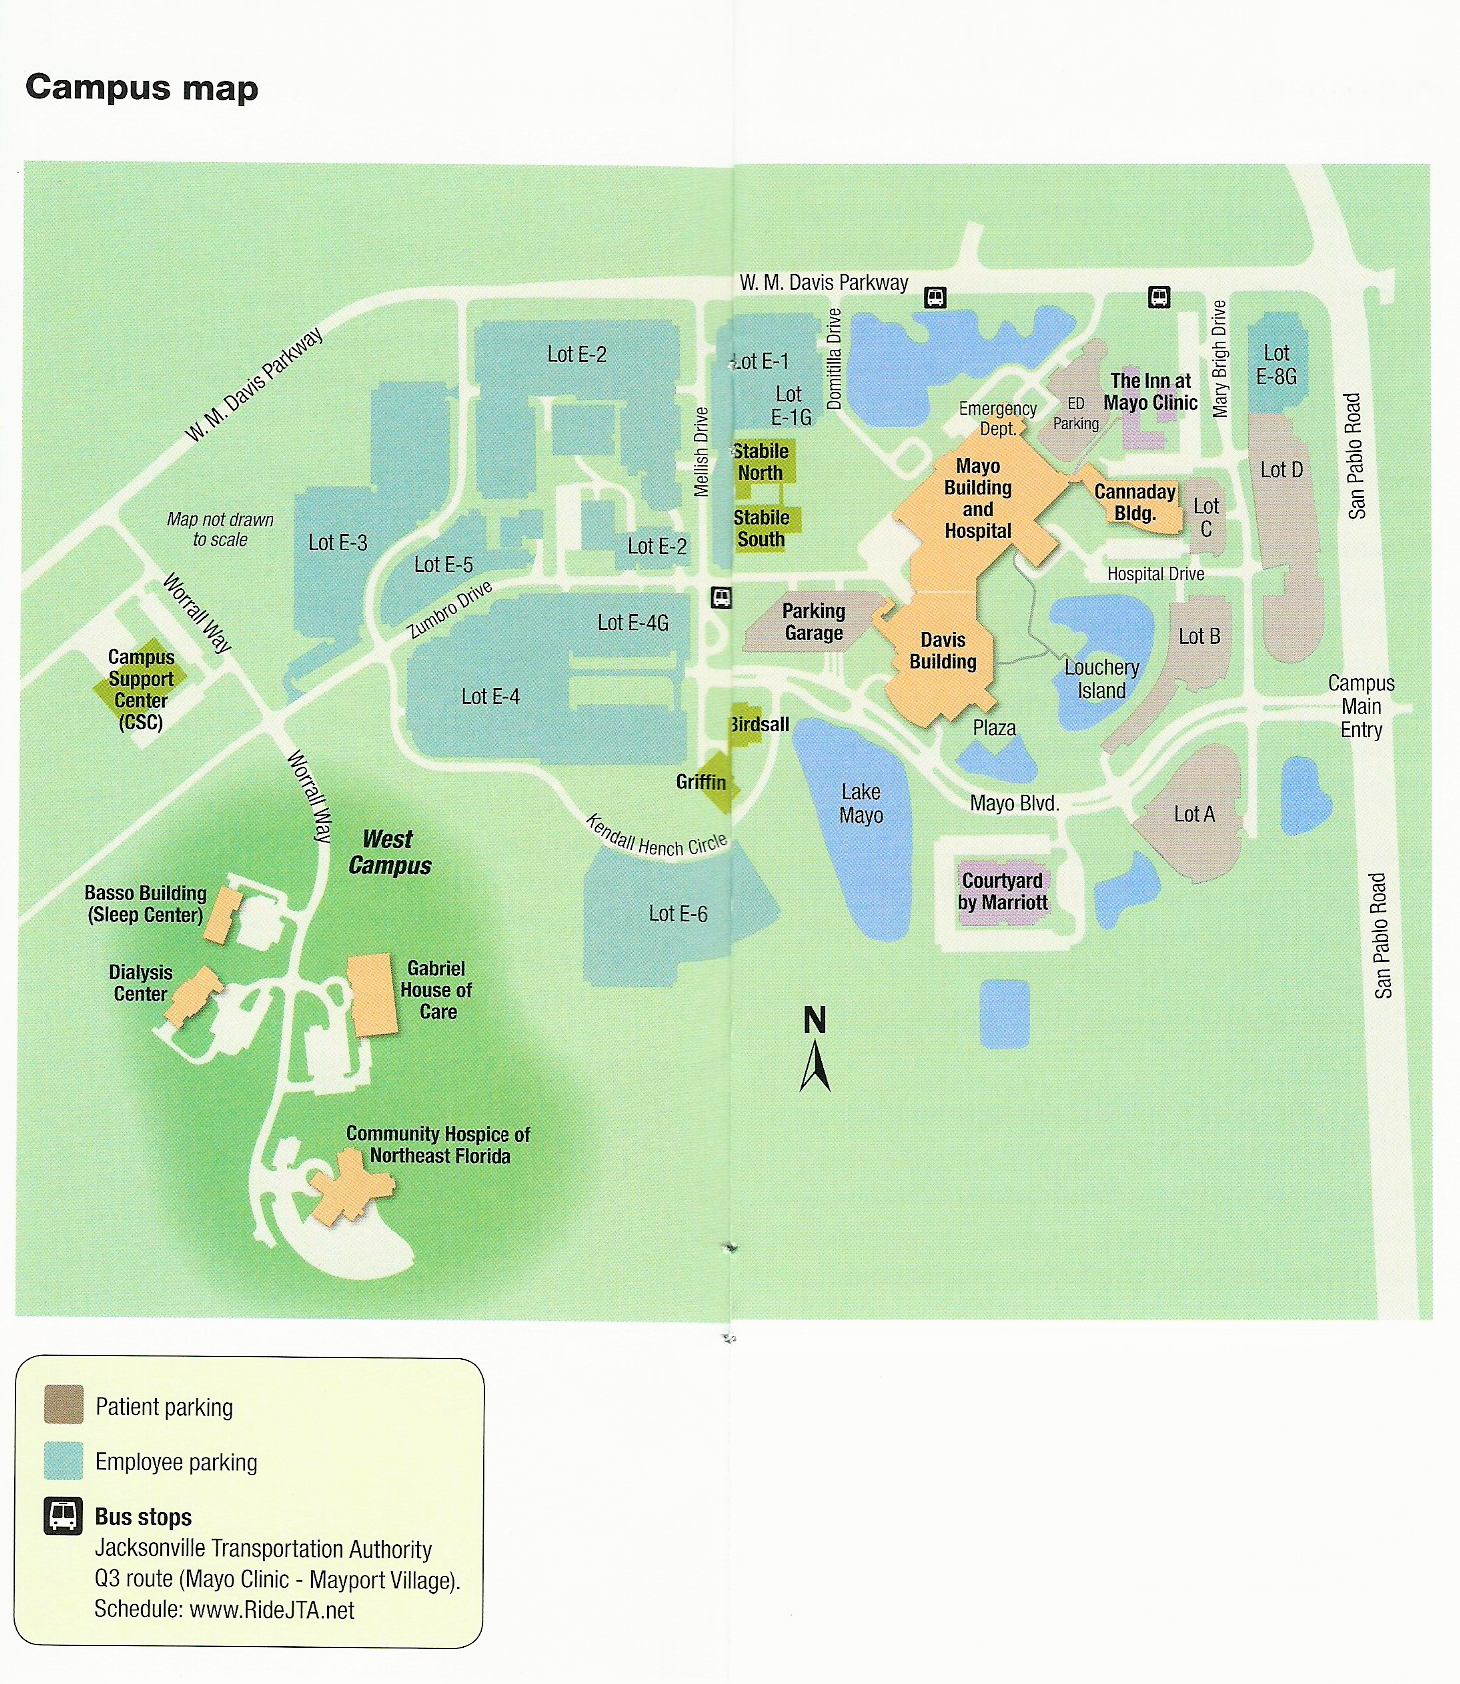 Mayo Clinic Florida Campus Map | Mayo Clinic In Florida | Pinterest - Mayo Clinic Jacksonville Florida Map